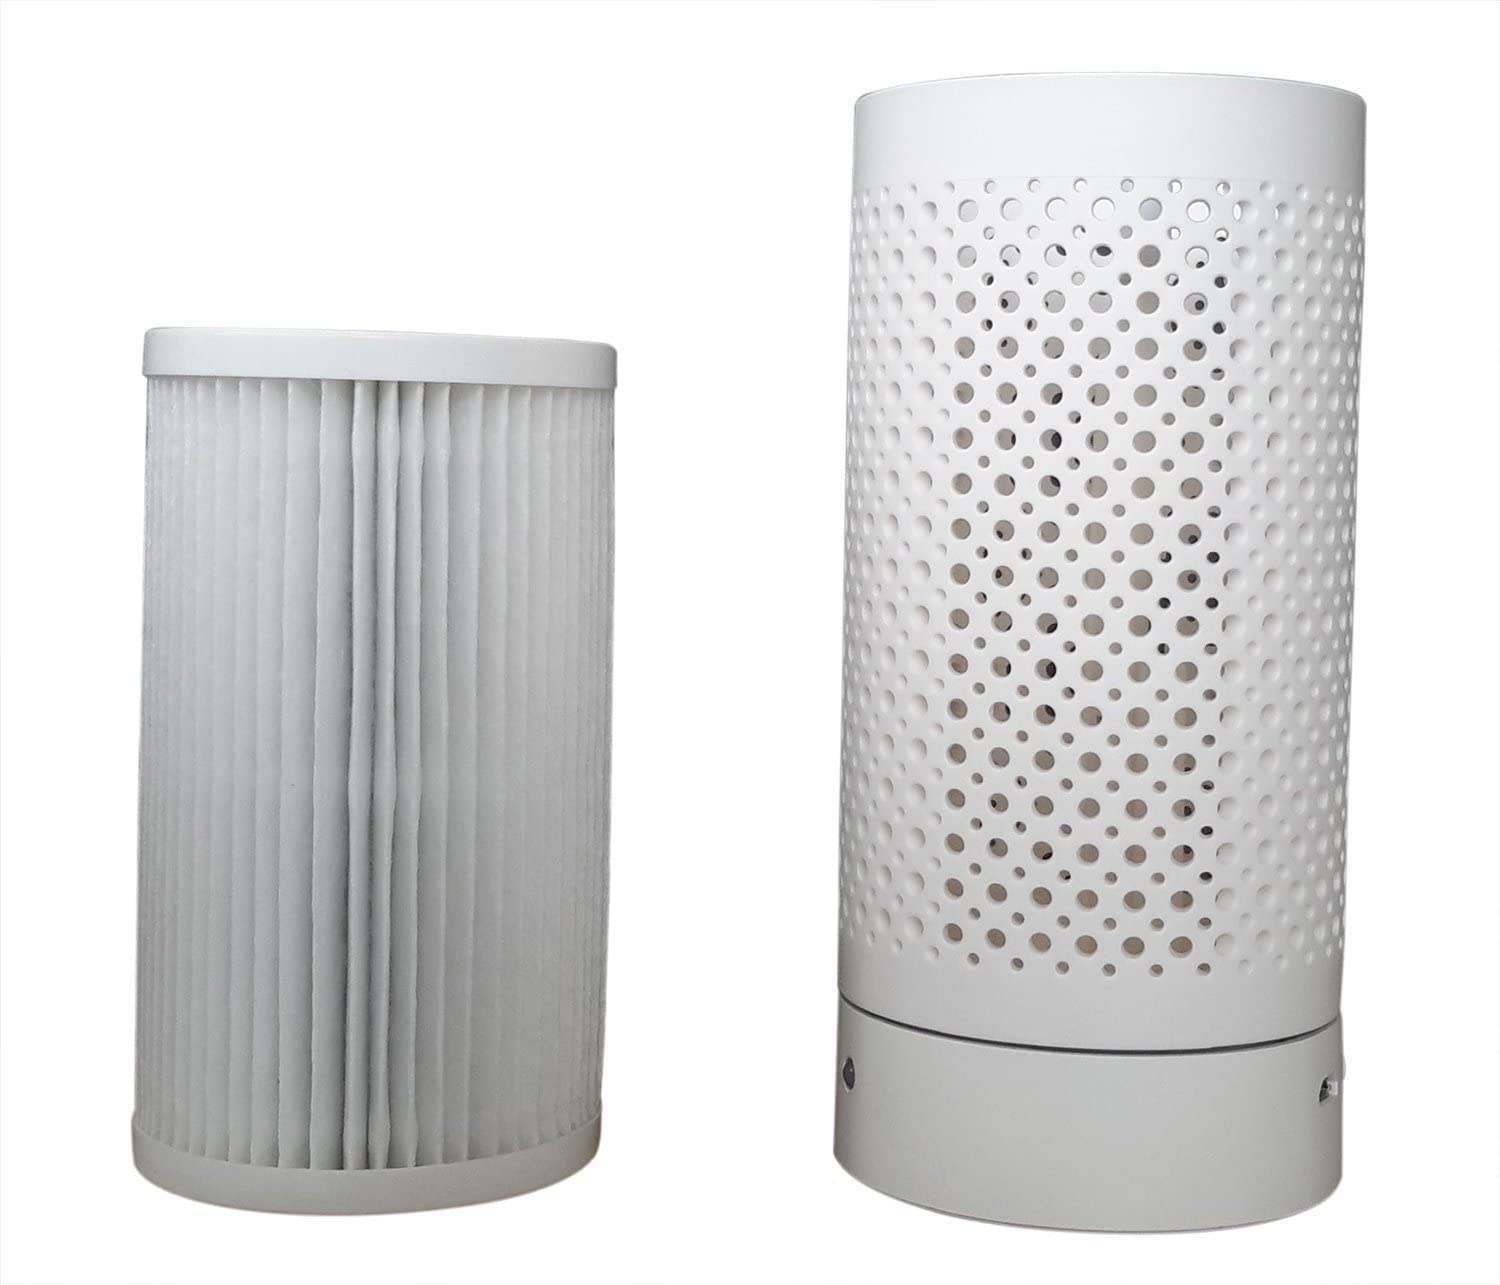 Air Purifier Replacement Filter for stoga Desktop Air Cleaner ...